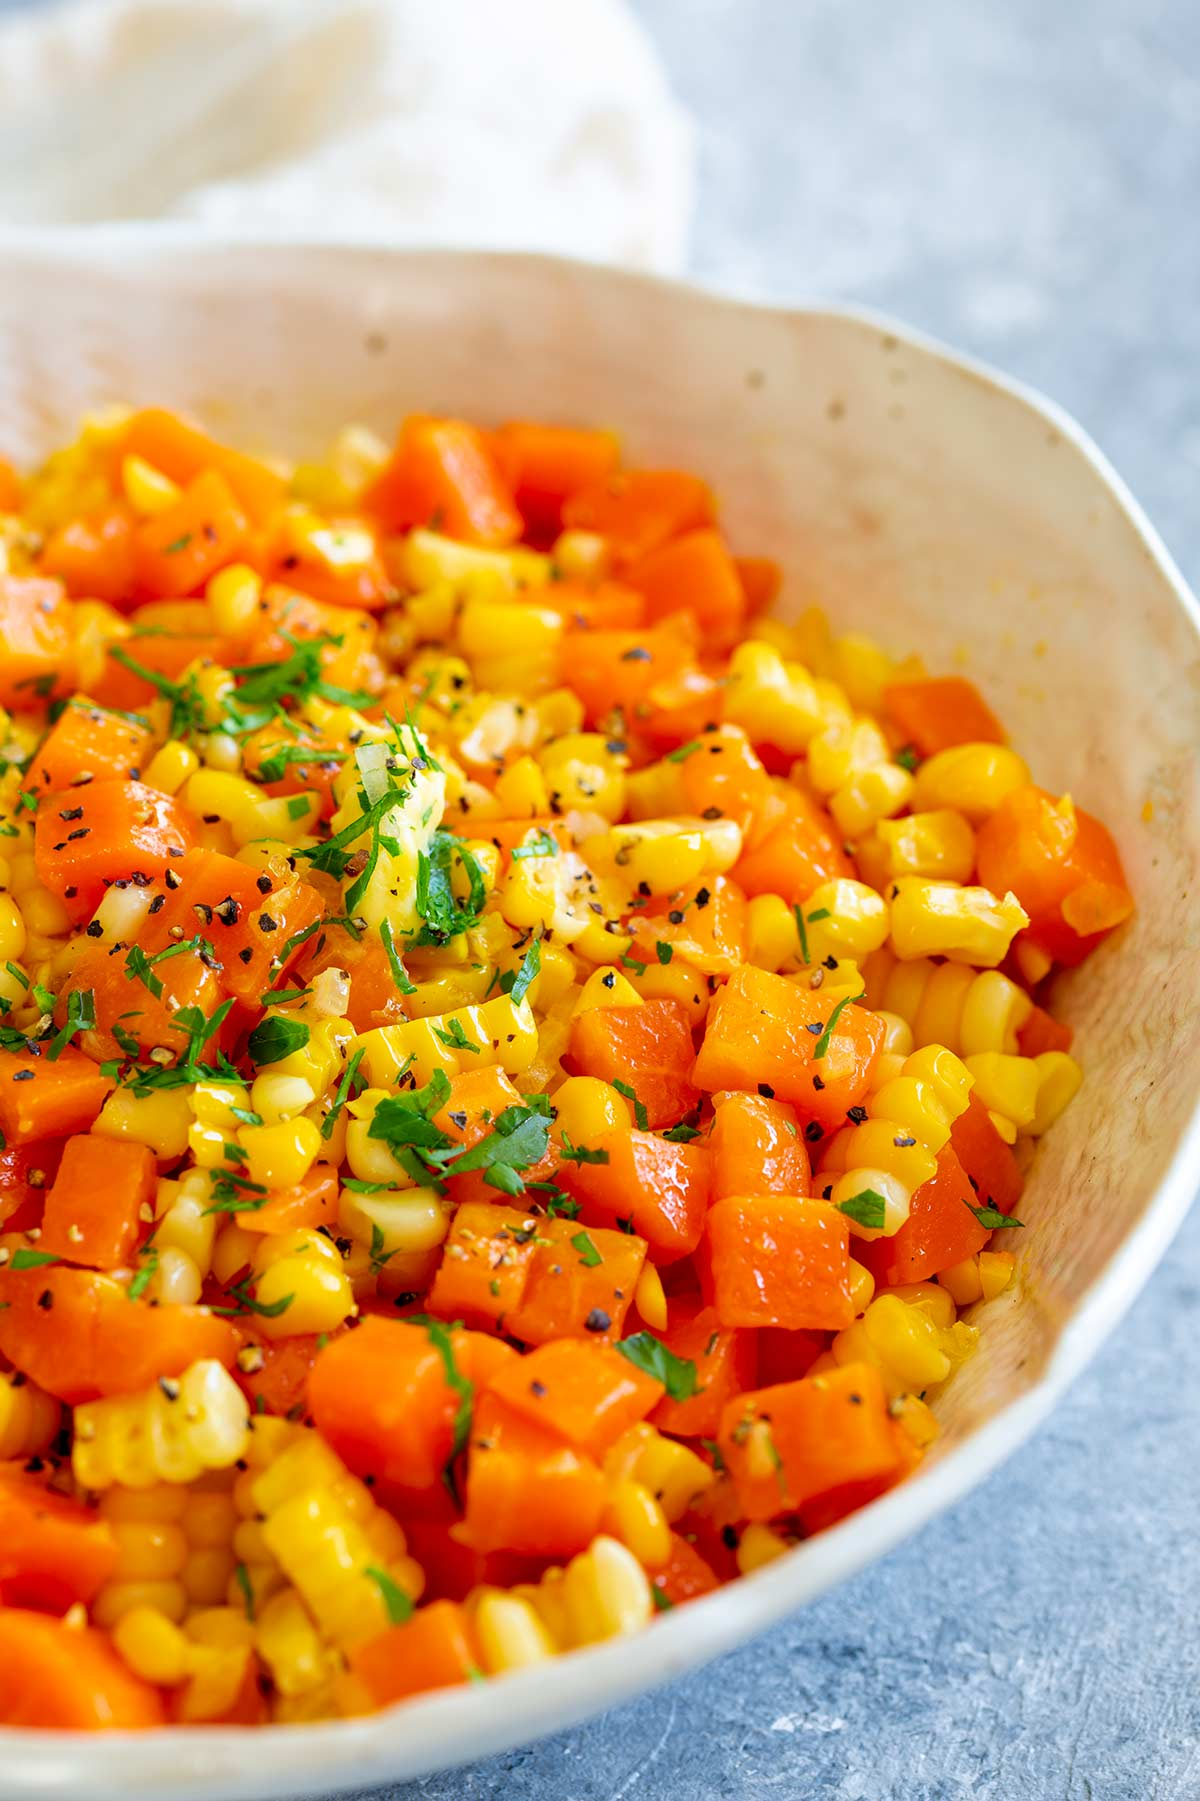 a whit bowl of chopped and buttered cooked carrots and corn